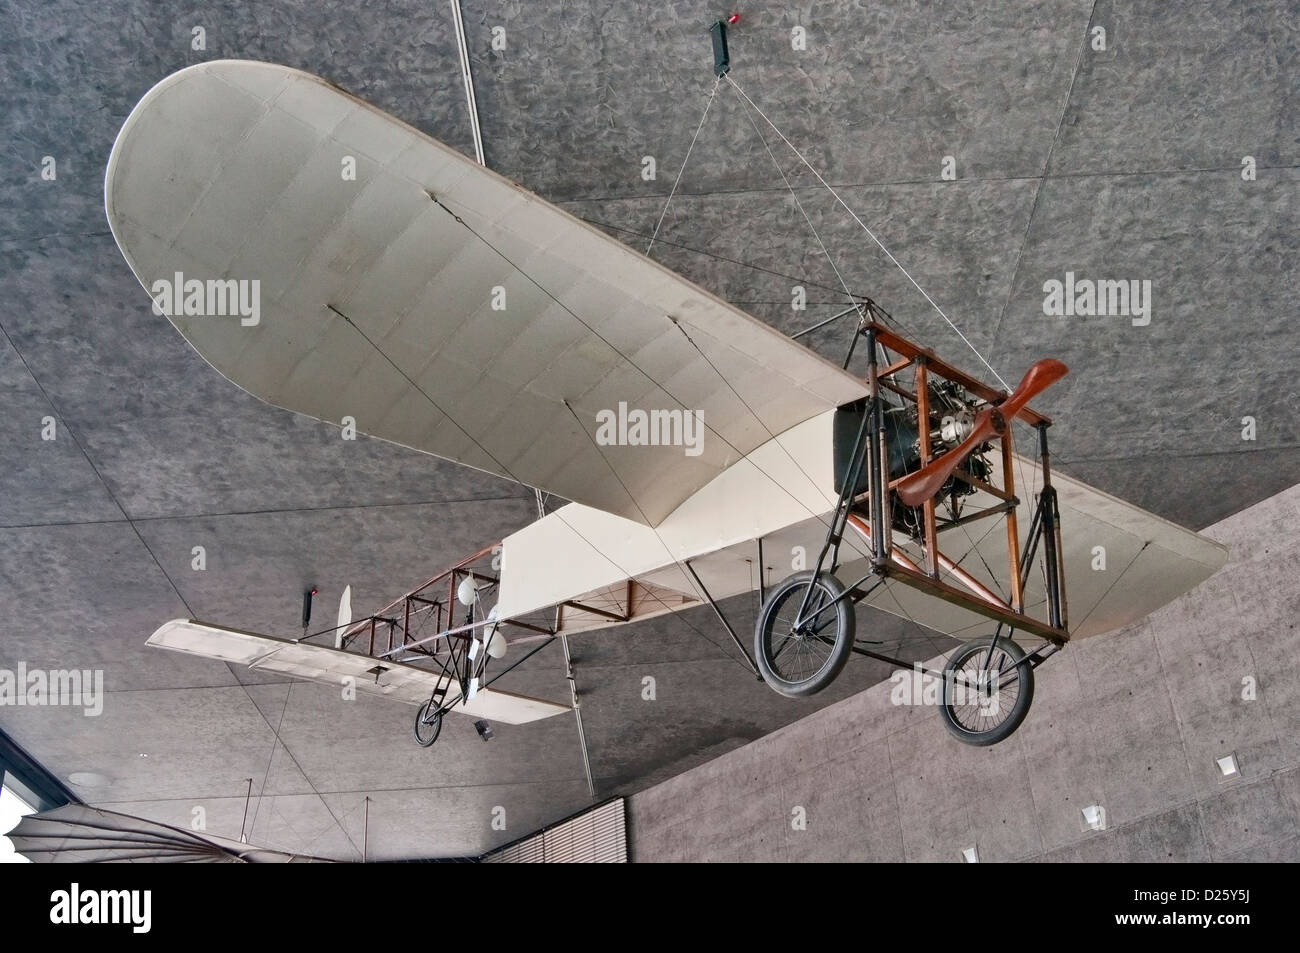 1909 Bleriot XI replica, Polish Aviation Museum in Krakow, Poland - Stock Image